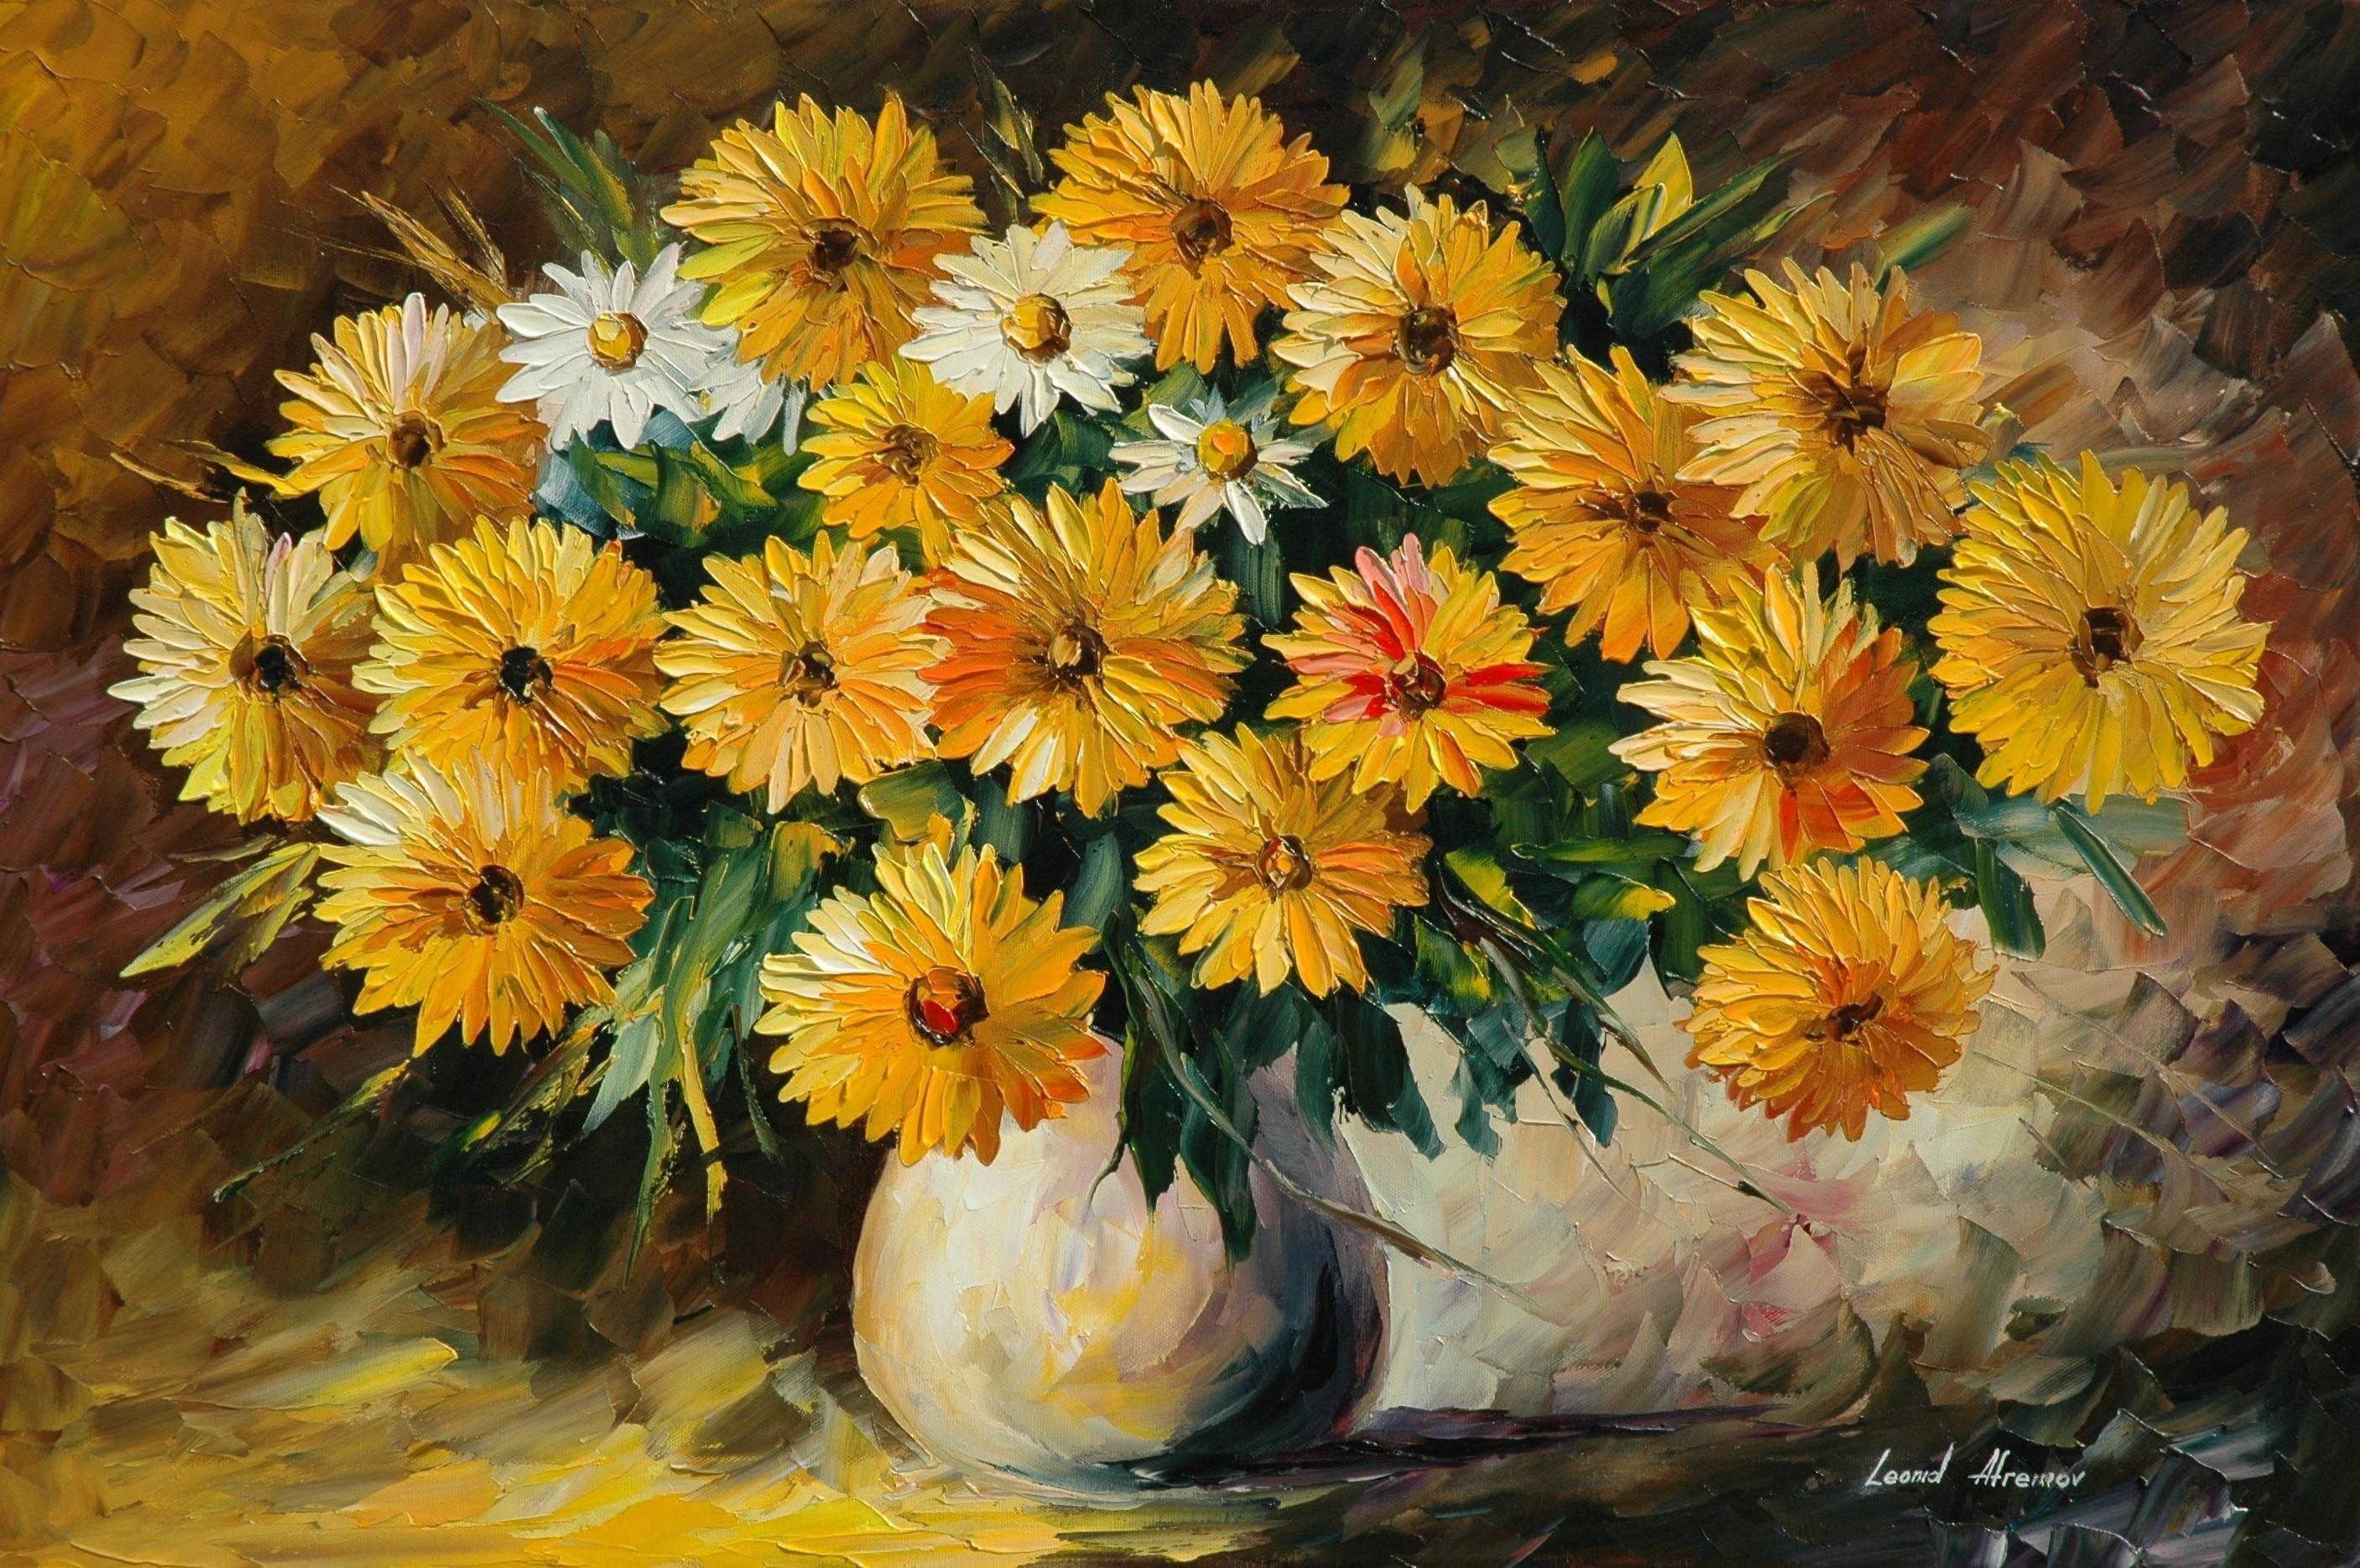 HD Paintings Wallpapers Find Best Latest In For Your PC Desktop Background And Mobile Phones